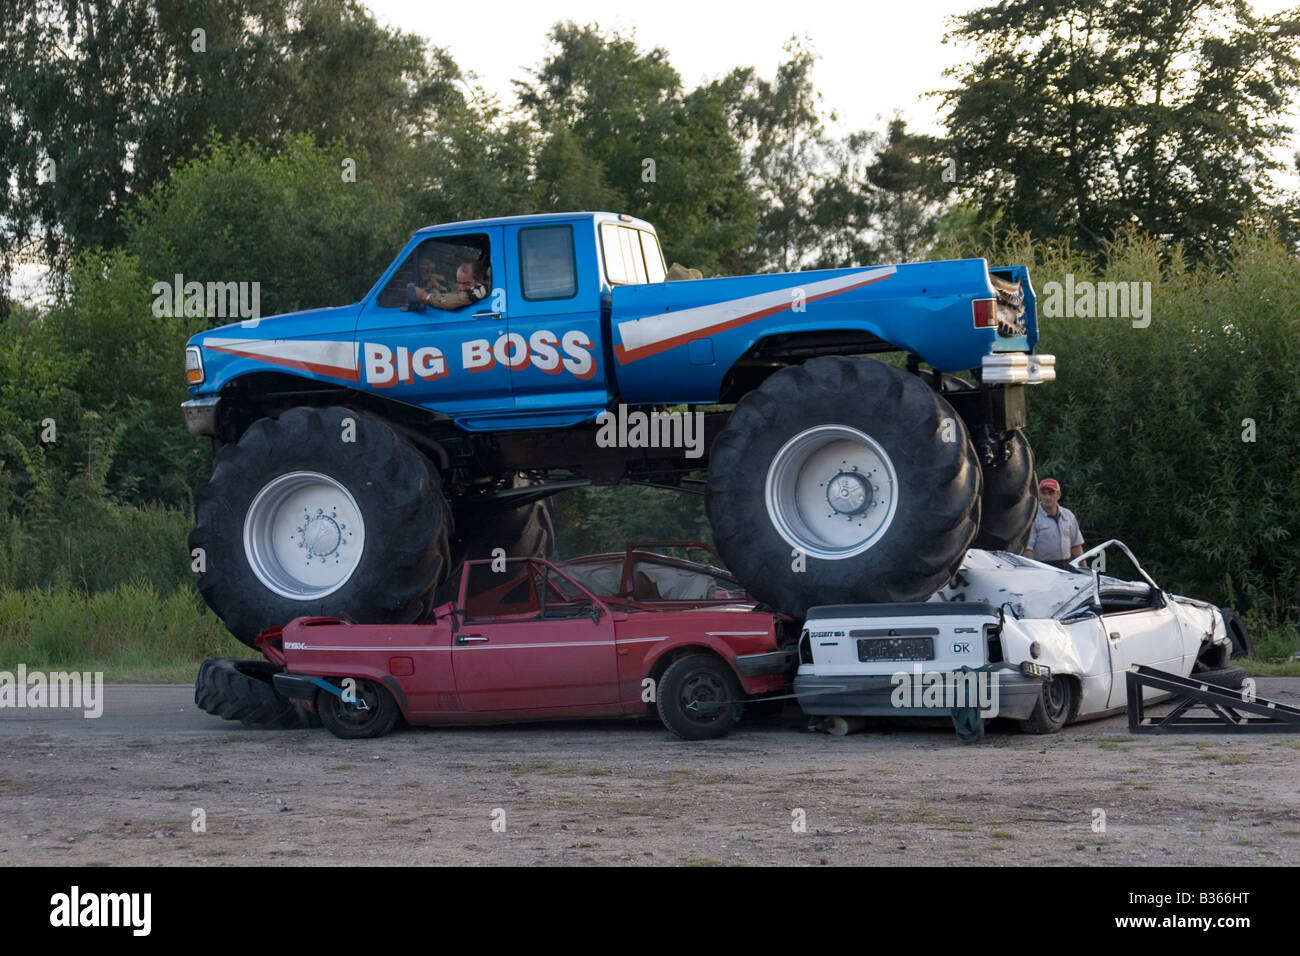 Big Boss Monster Truck Crushing Cars Stock Photo Royalty Free